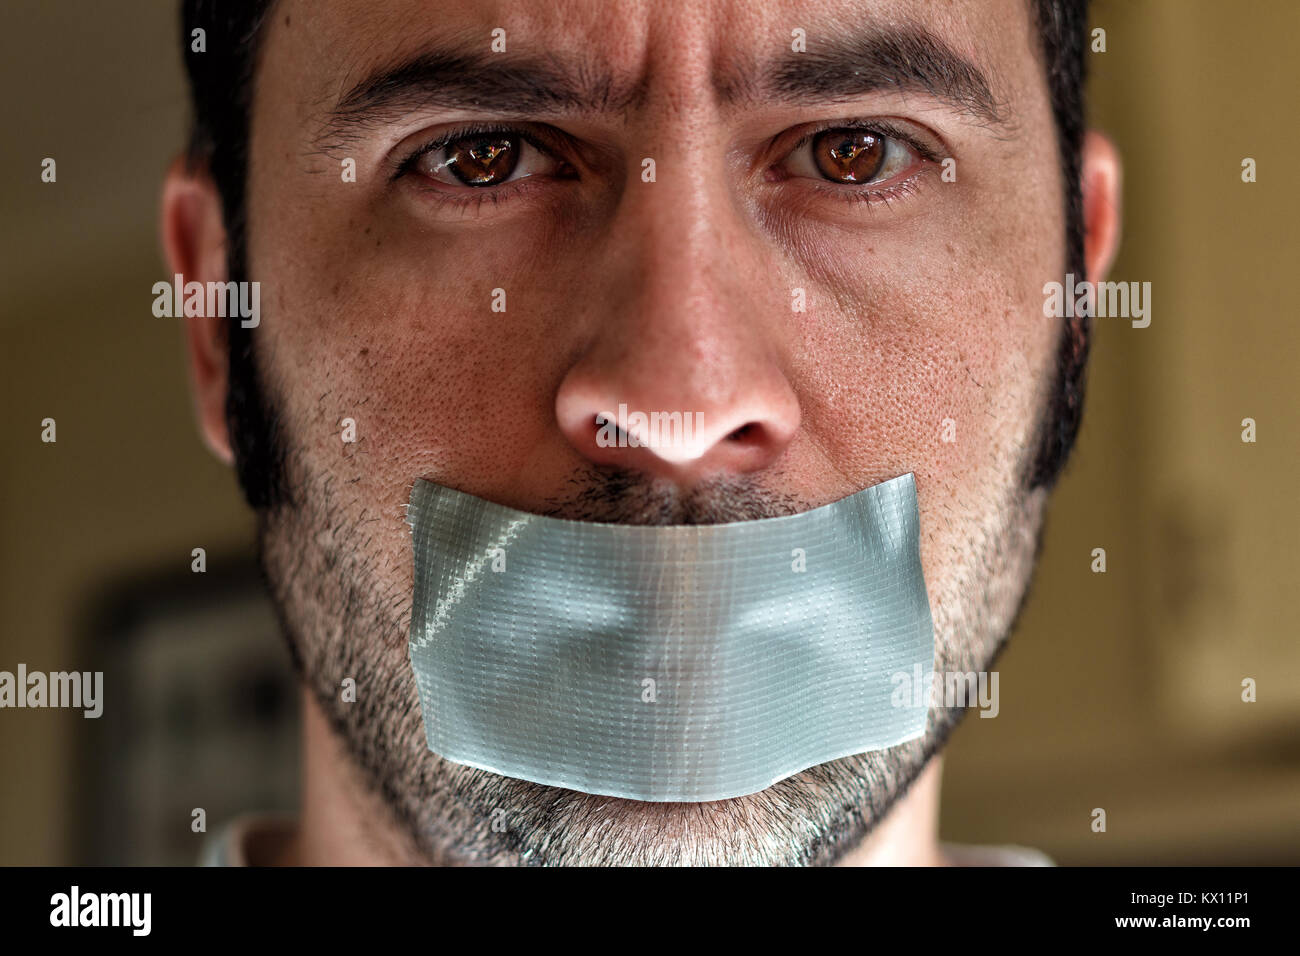 Close up portrait of a man with duct tape over his mouth - Stock Image